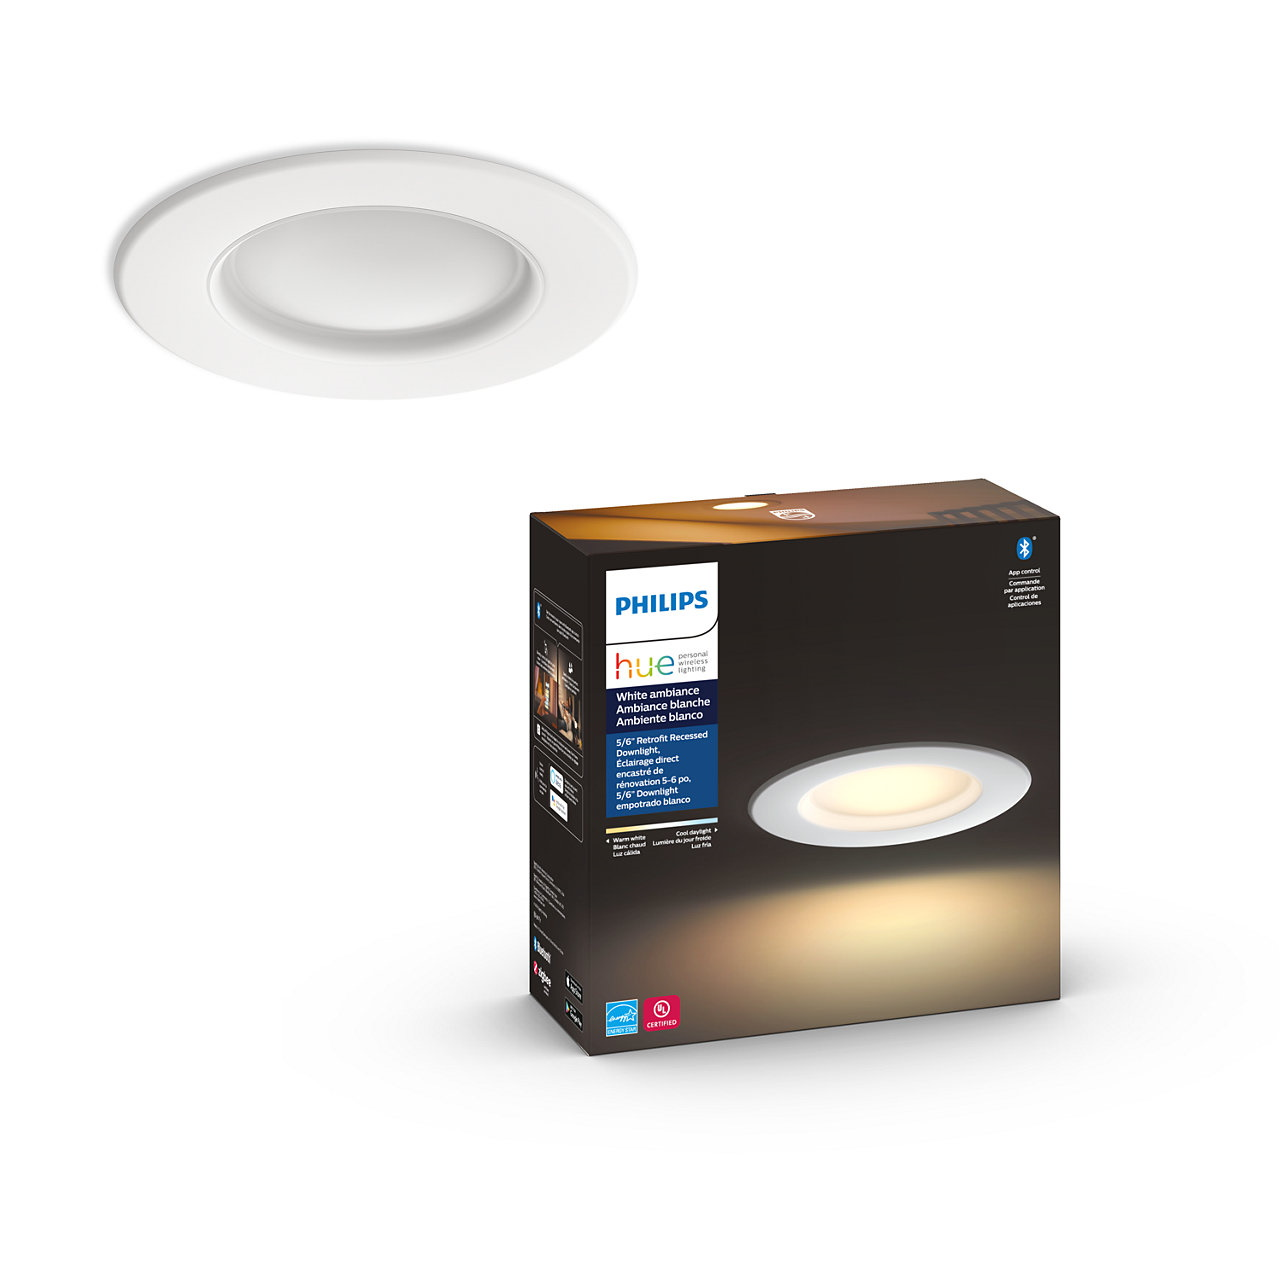 Hue Downlight 5/6 inch White Ambiance